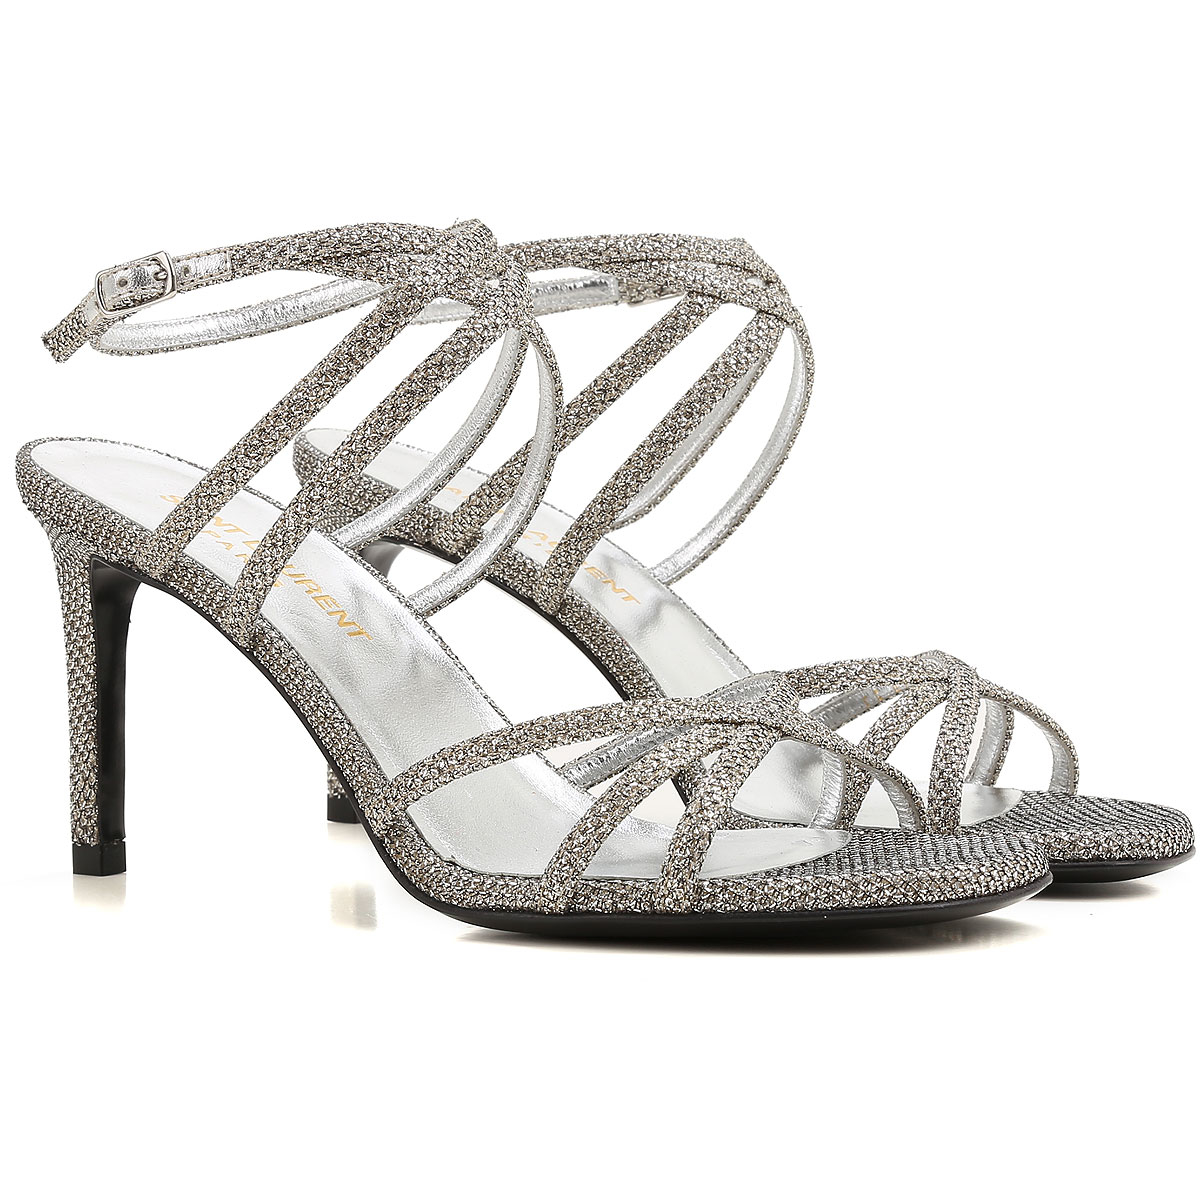 Yves Saint Laurent Sandals for Women in Outlet Silver Canada - GOOFASH - Womens SANDALS